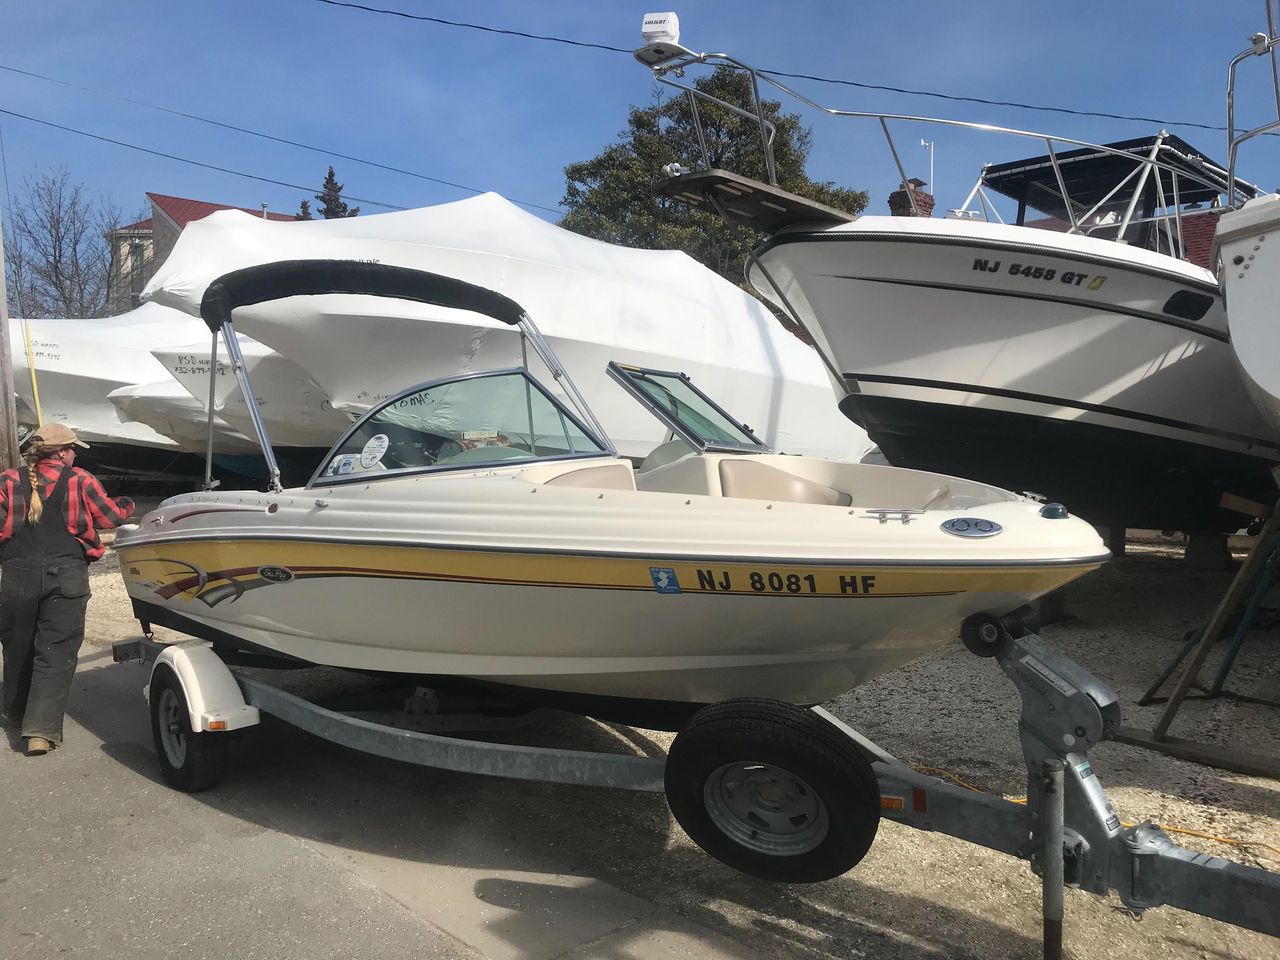 2003 Used Sea Ray 175 Bow Rider Bowrider Boat For Sale